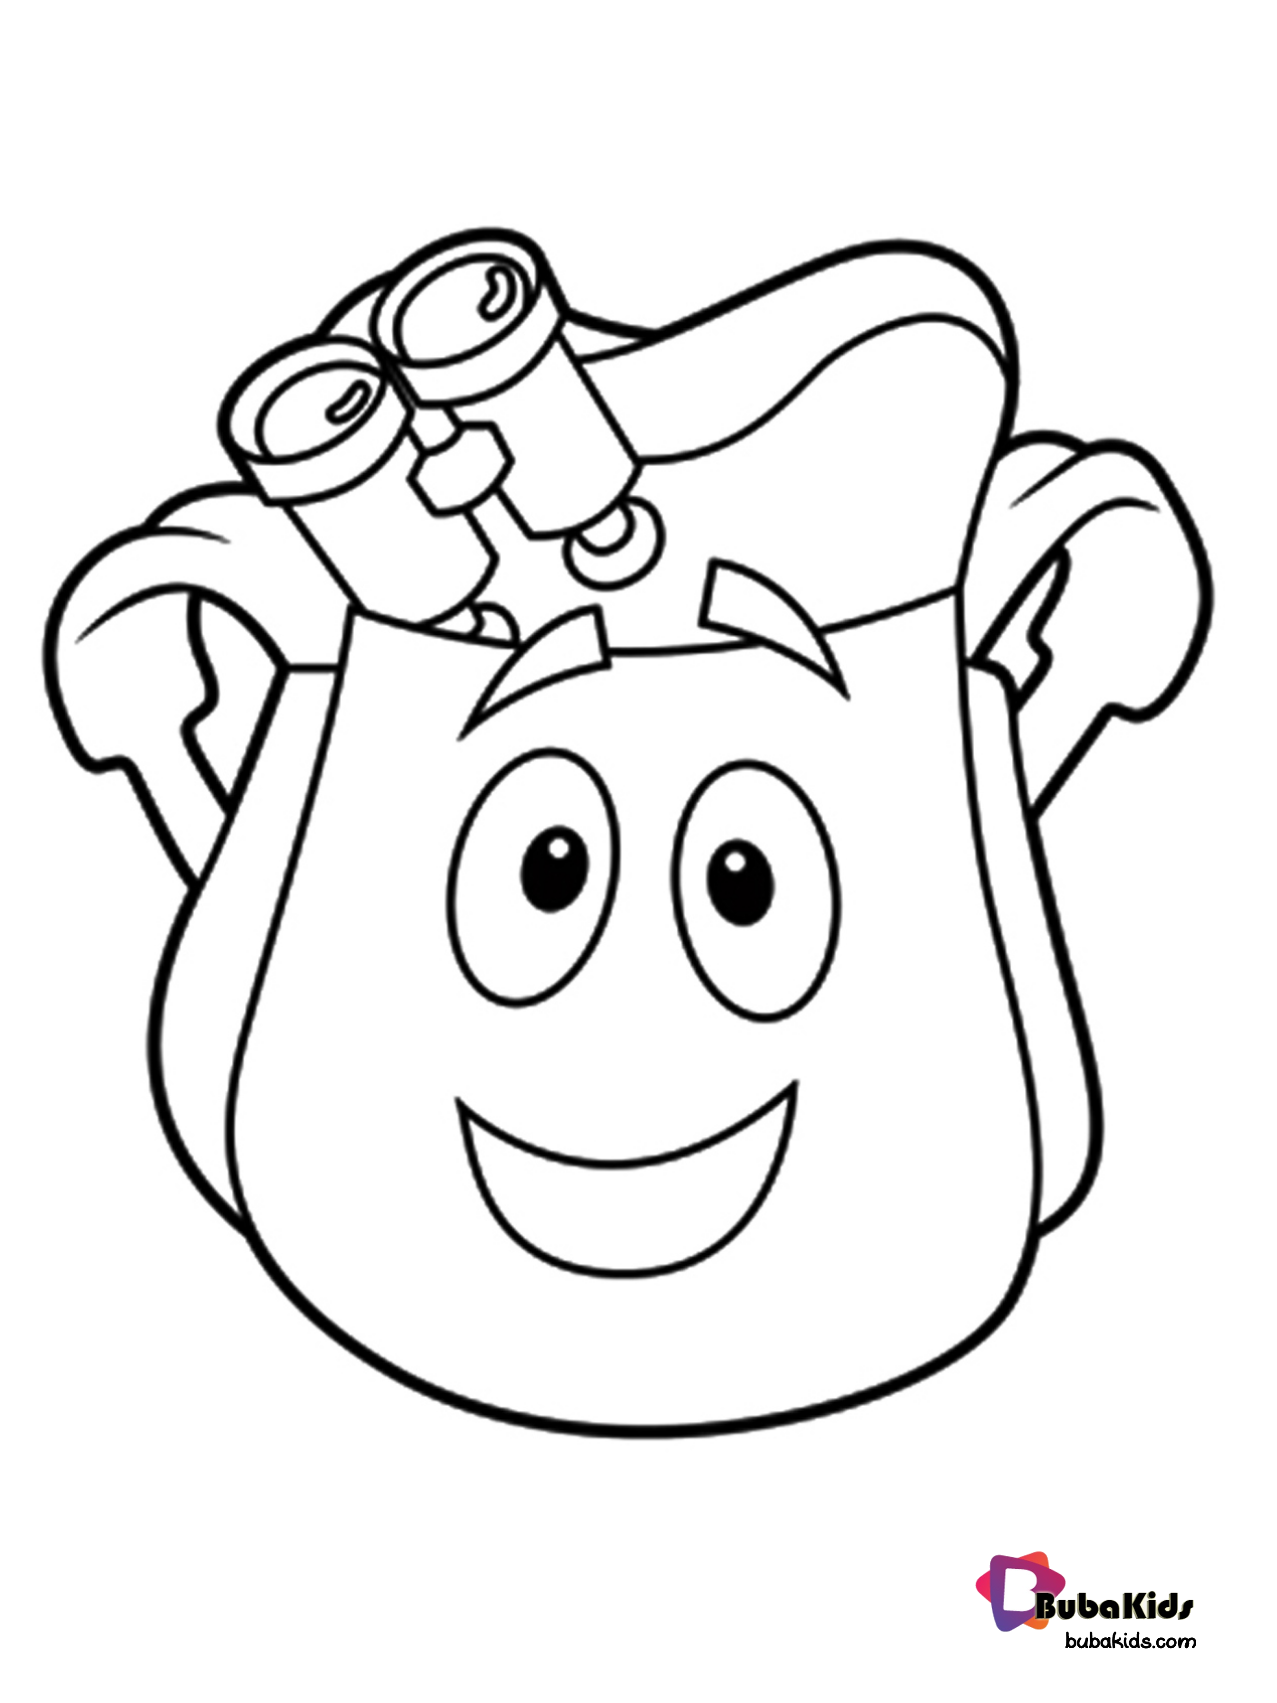 Dora Explorer Backpack Rescue Bag With Map Free Download And Printable Collection Of Cartoon Coloring Pages For Teena Rescue Bags Cartoon Coloring Pages Dora